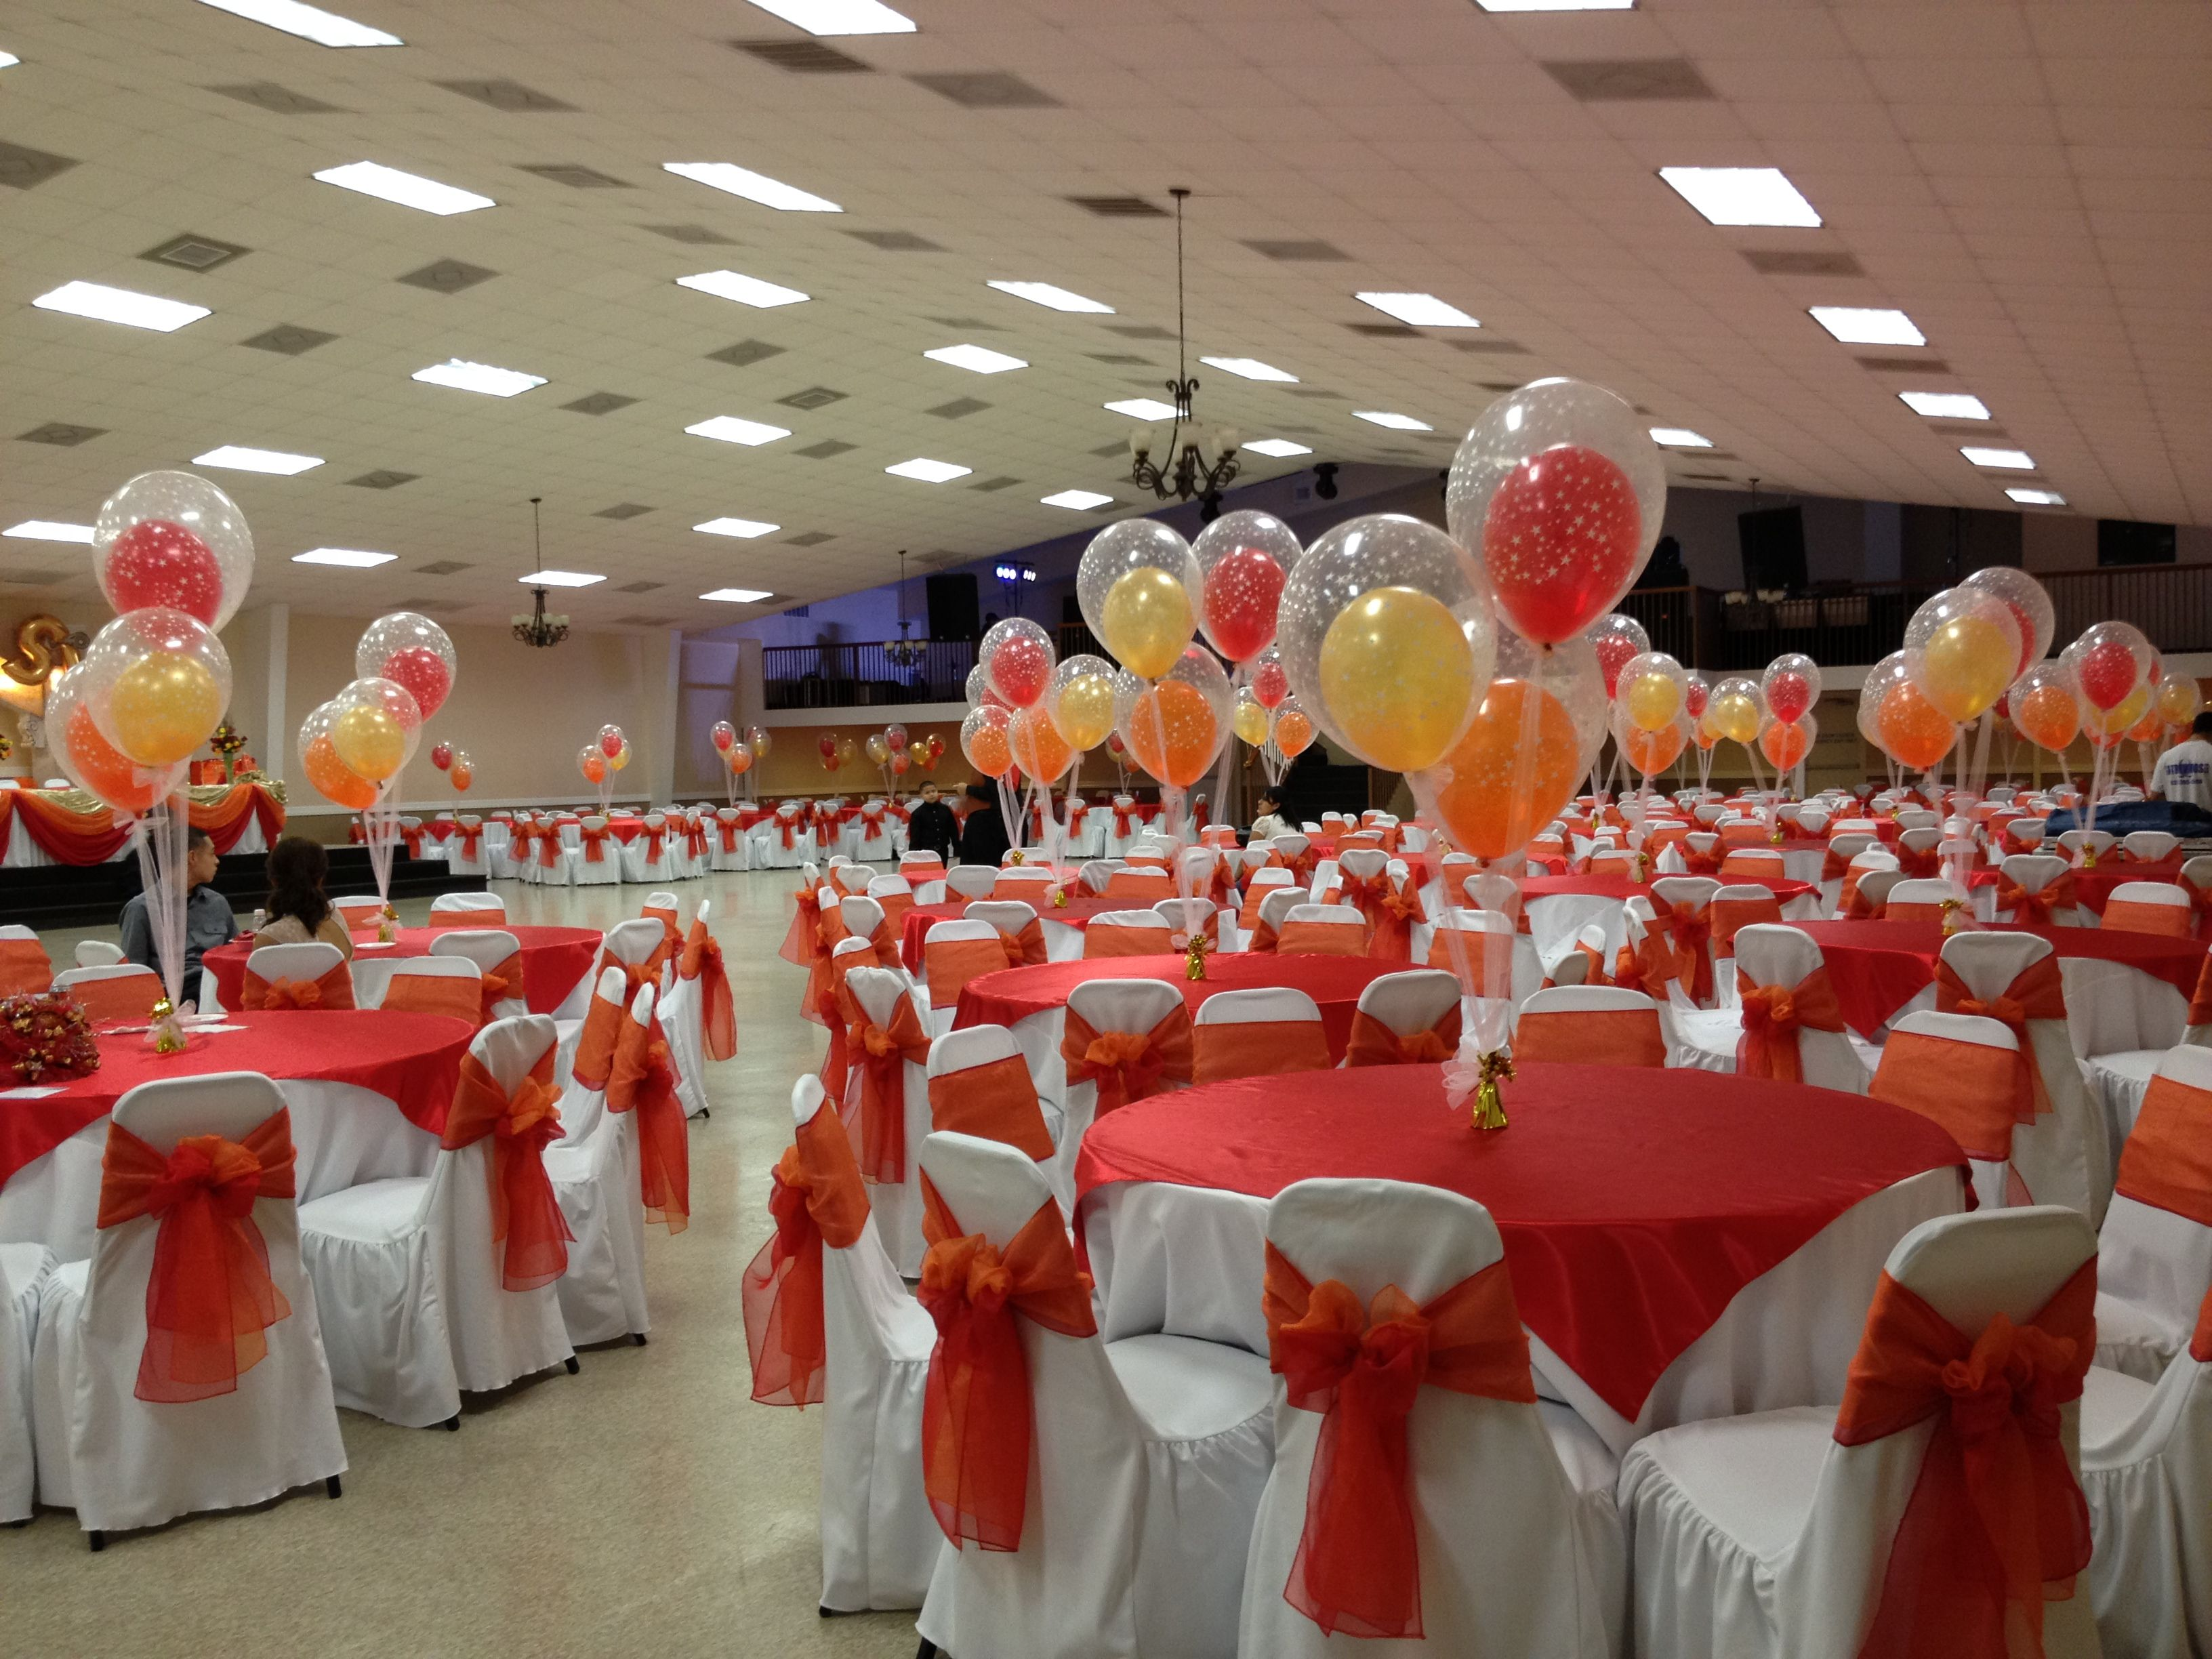 Quinceanera decorations balloon decorations i would do for Balloon decoration ideas for quinceaneras